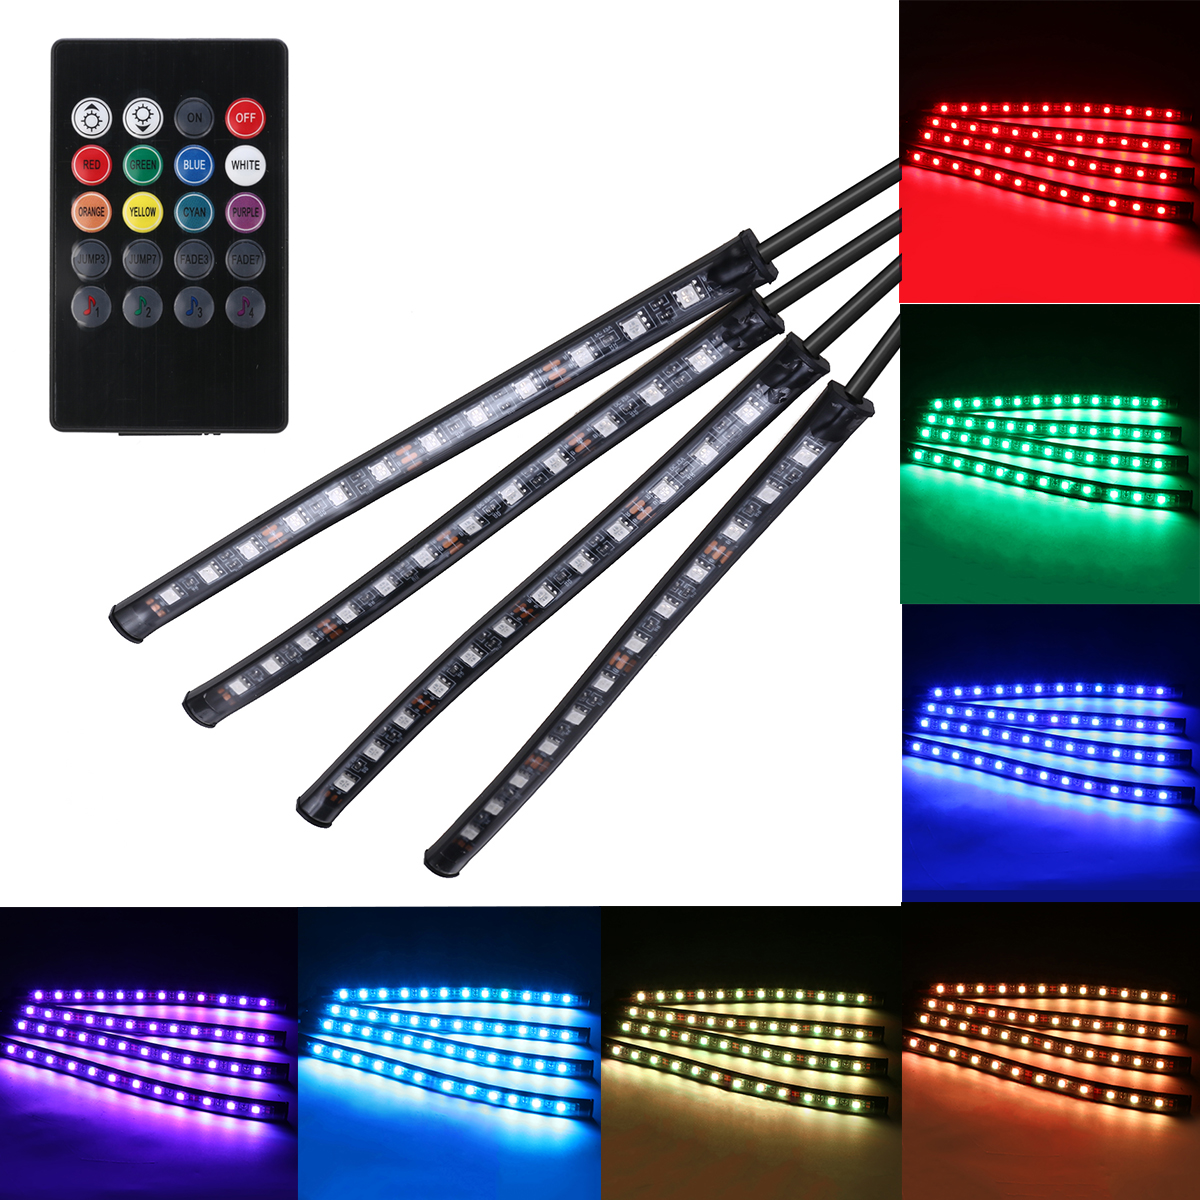 4pcs/set RGB 12LED Car Interior Neon Atmosphere Strip Light Colorful Decorative Lamp With Music Remote Control DC 12V